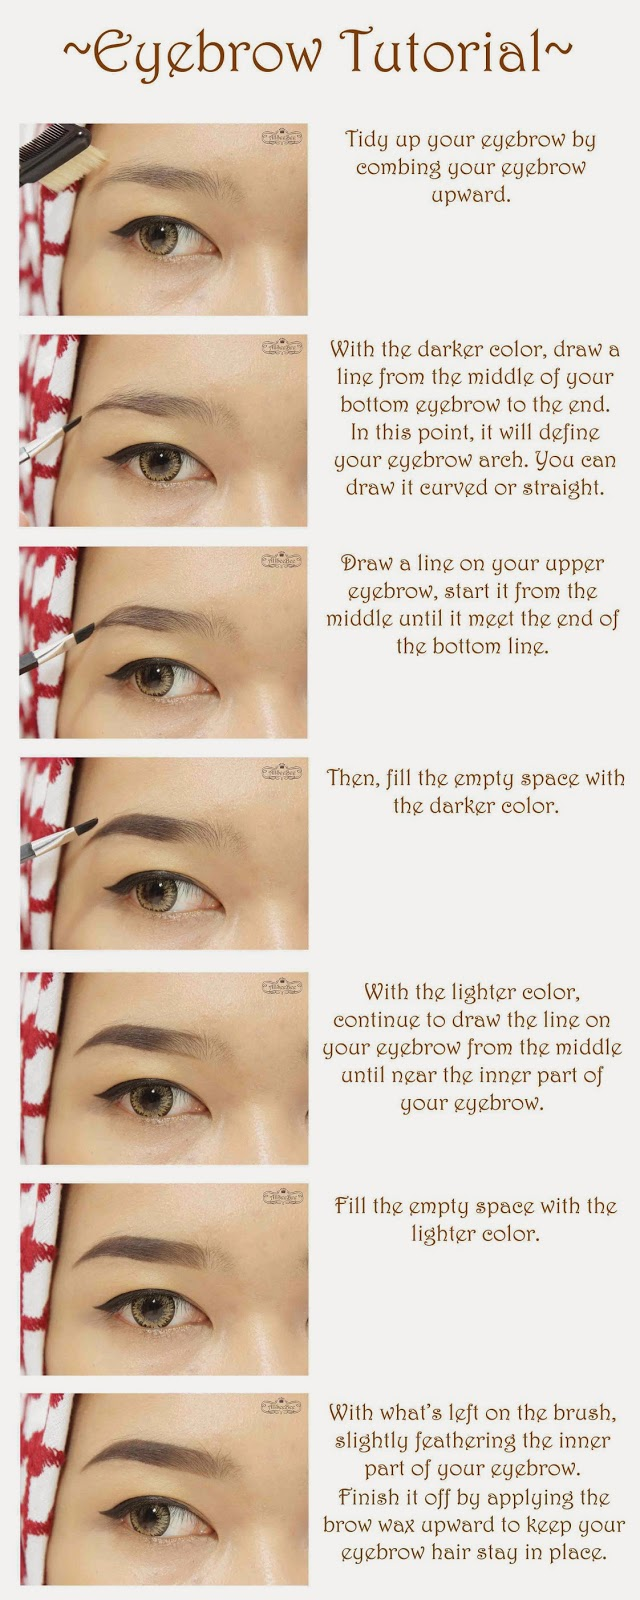 Wet N Wild Ultimate Brow Kit In Ash Brown Review Eyebrow Tutorial Oh Yeah One Important Thing If Youre Going To Try This Method Is That Wipe The Brush With Clean Tissue Before You Apply Lighter Color